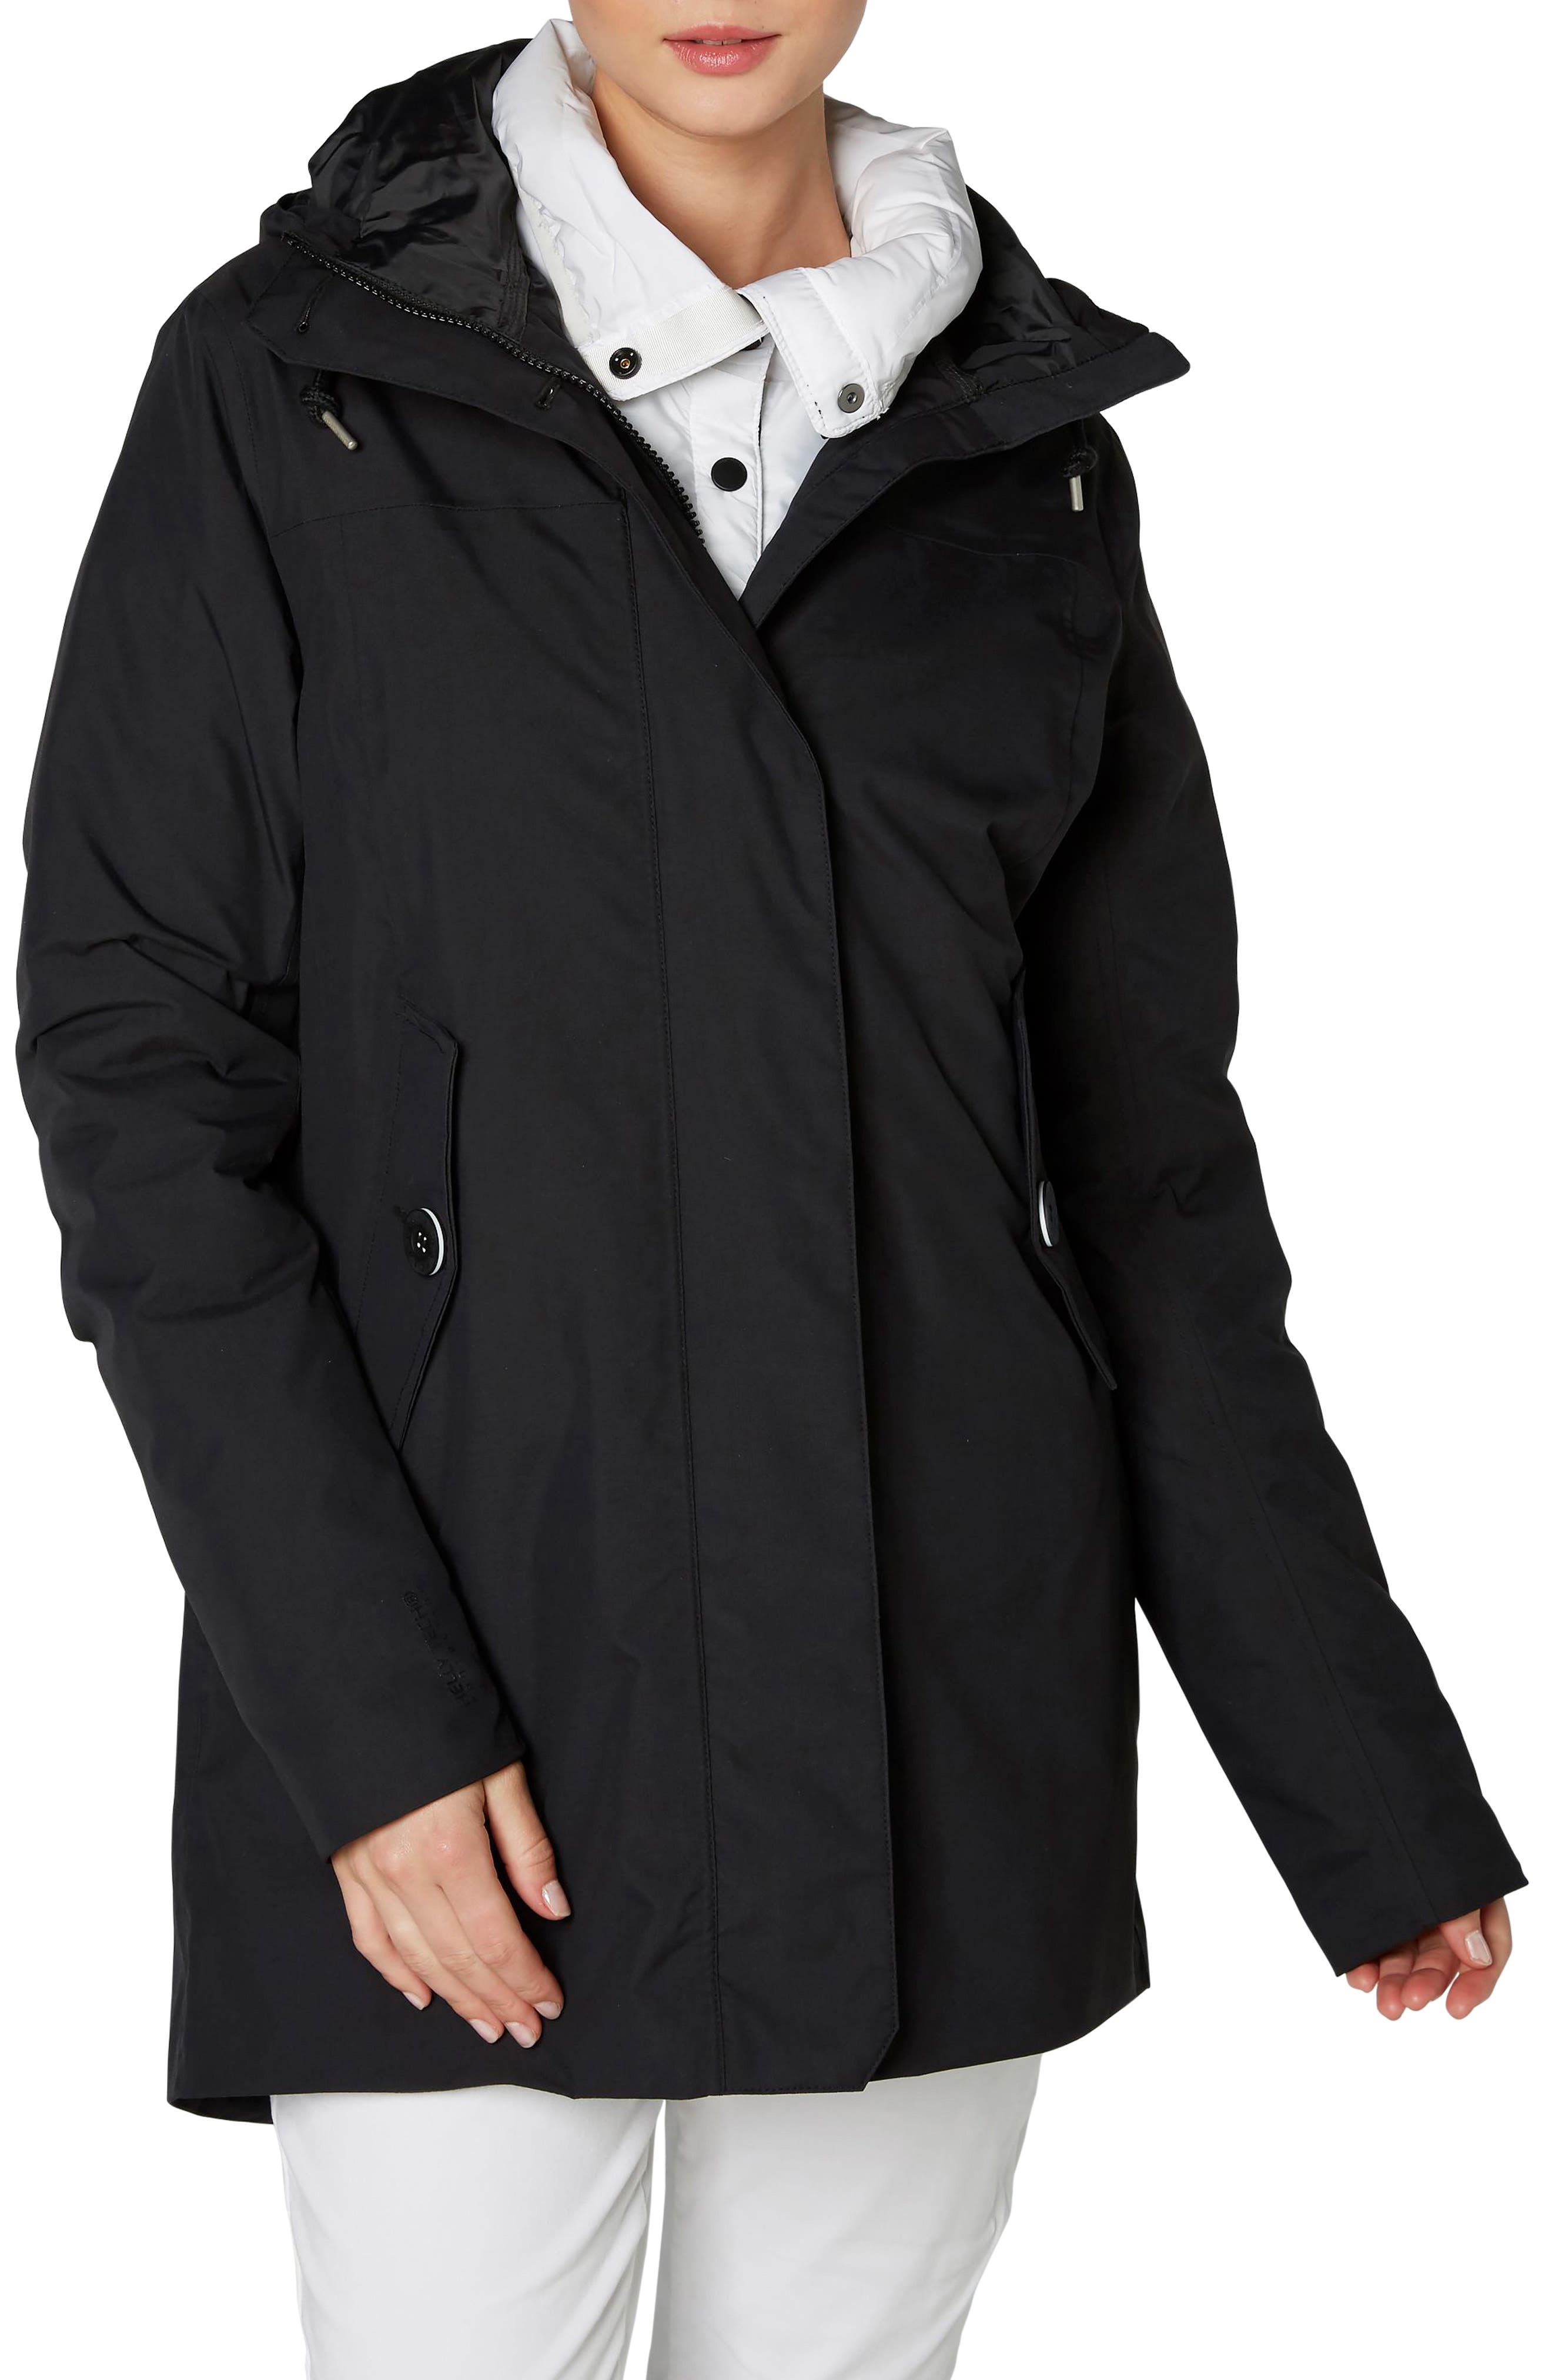 Waterford Weatherproof Hooded Parka,                             Main thumbnail 1, color,                             010